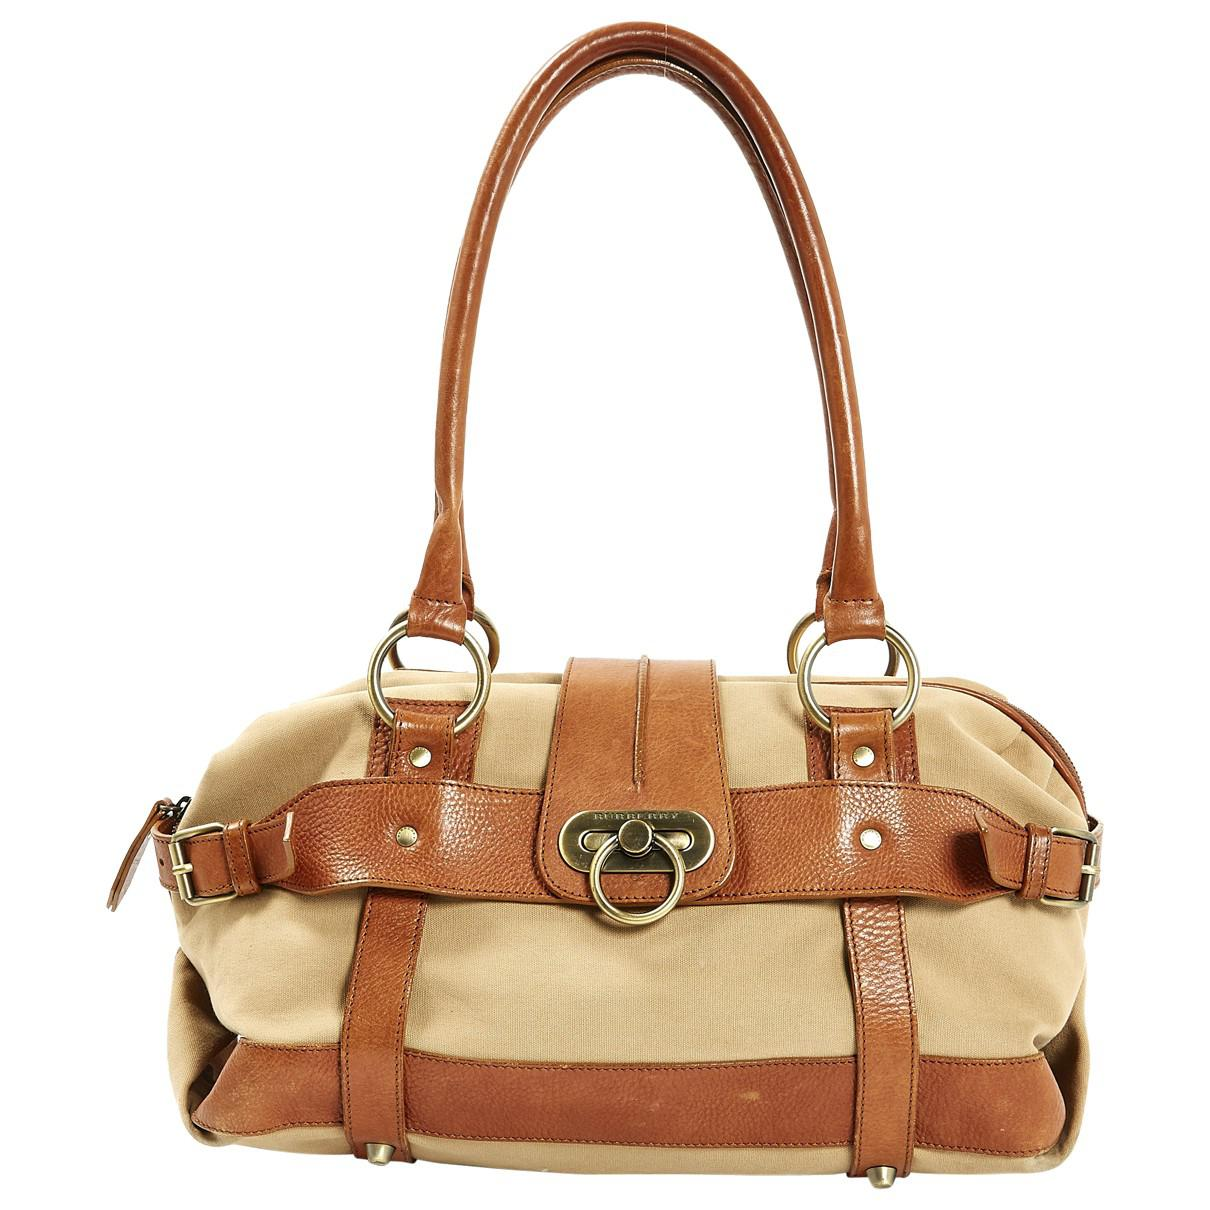 Burberry Women S Natural Pre Owned Cloth Handbag